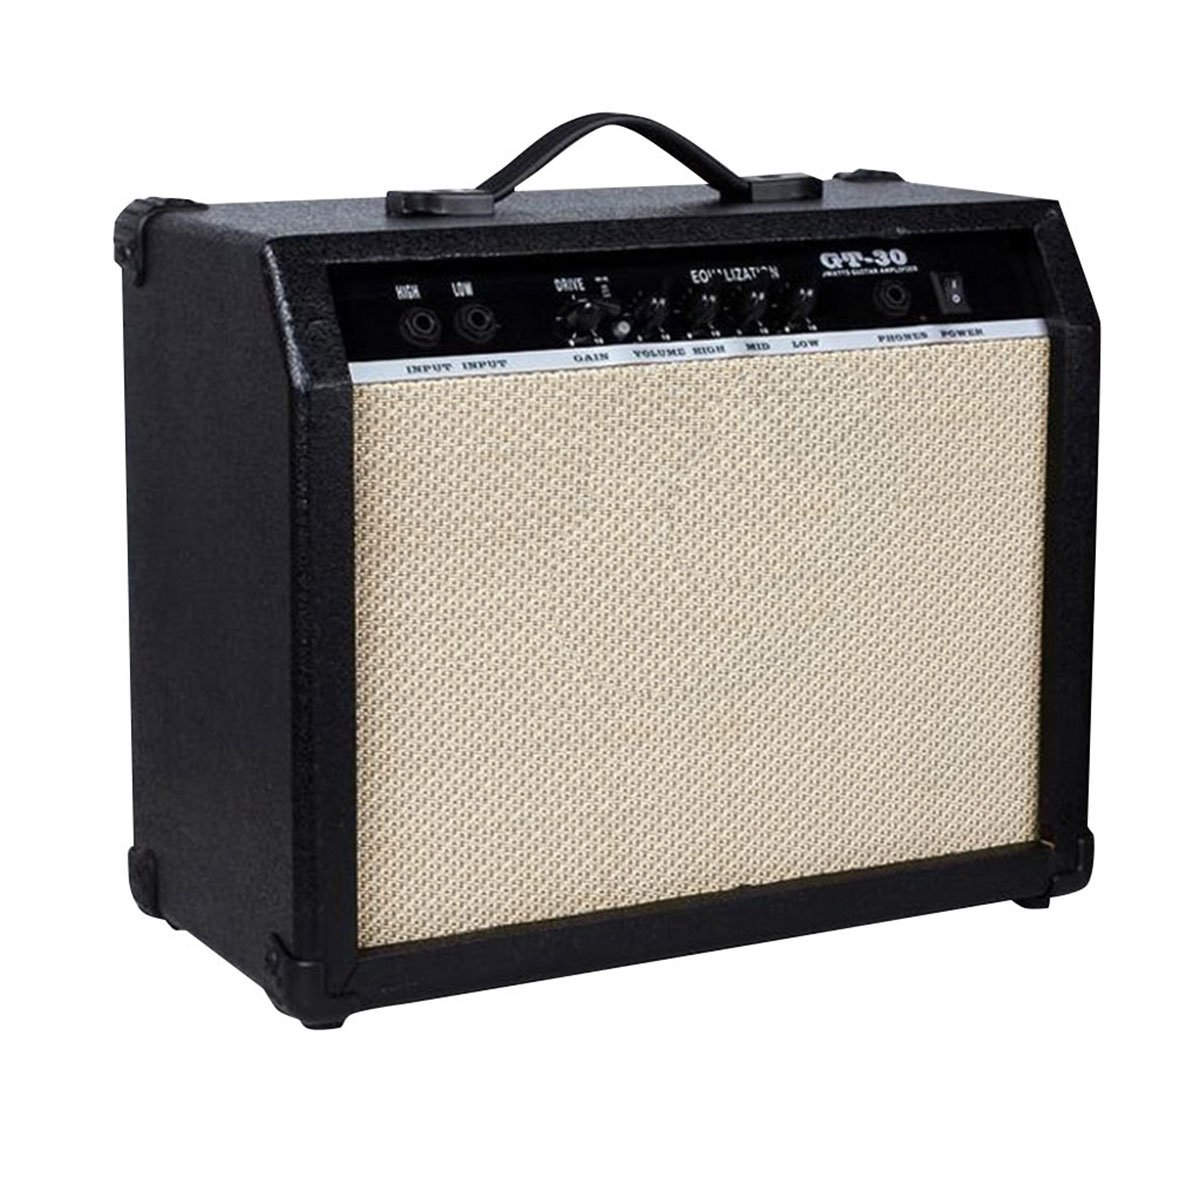 Blueseason Electric Guitar Amplifier 30W Clean Channel with Handle Portable Amplifier ,Black